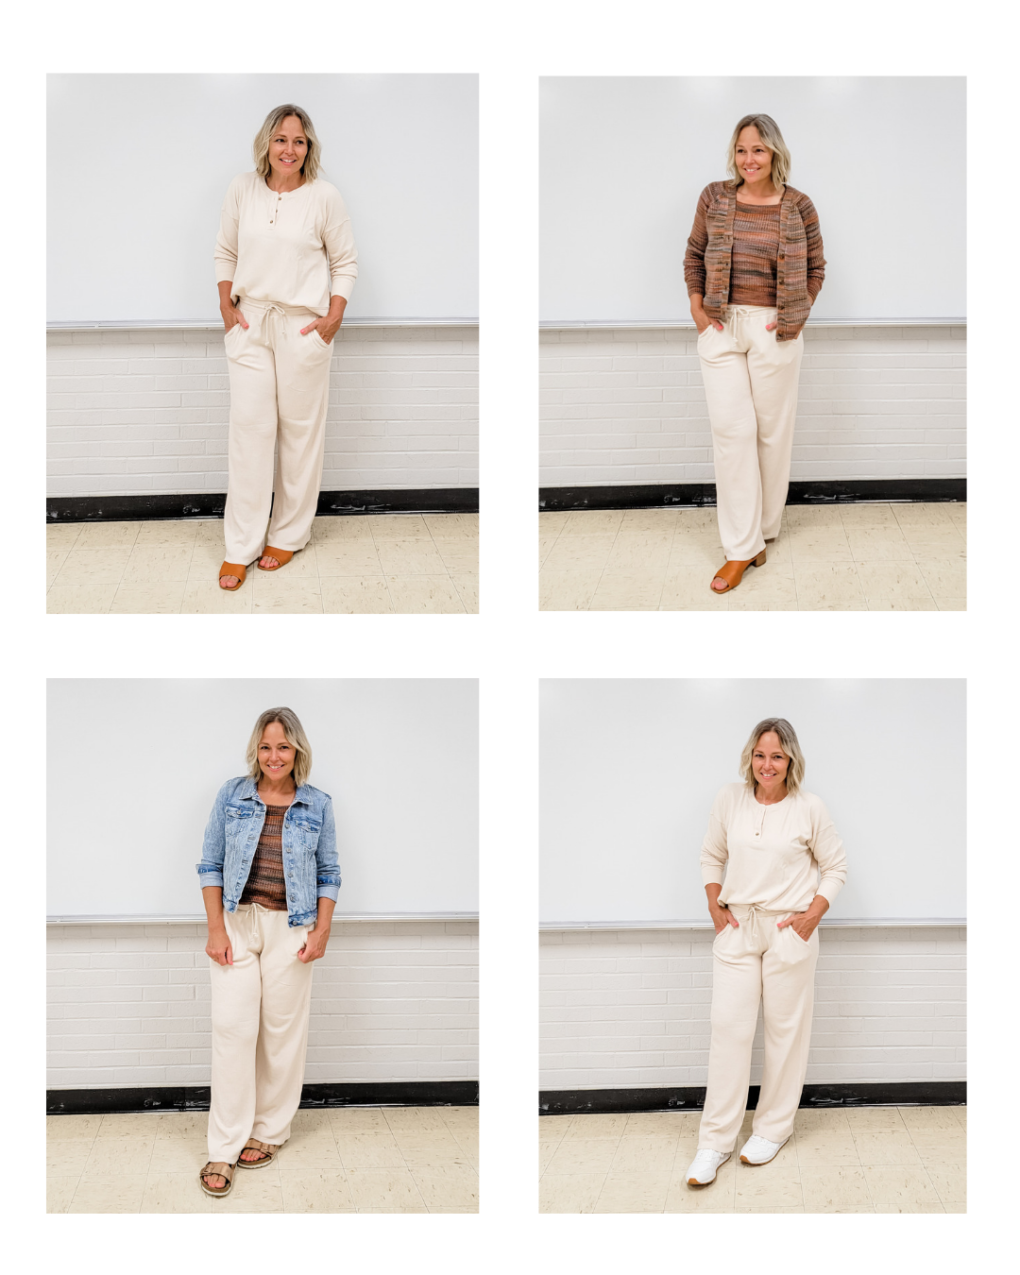 LOFT Lou & Grey off white waffle knit set with henley top and wide leg pants teacher outfits